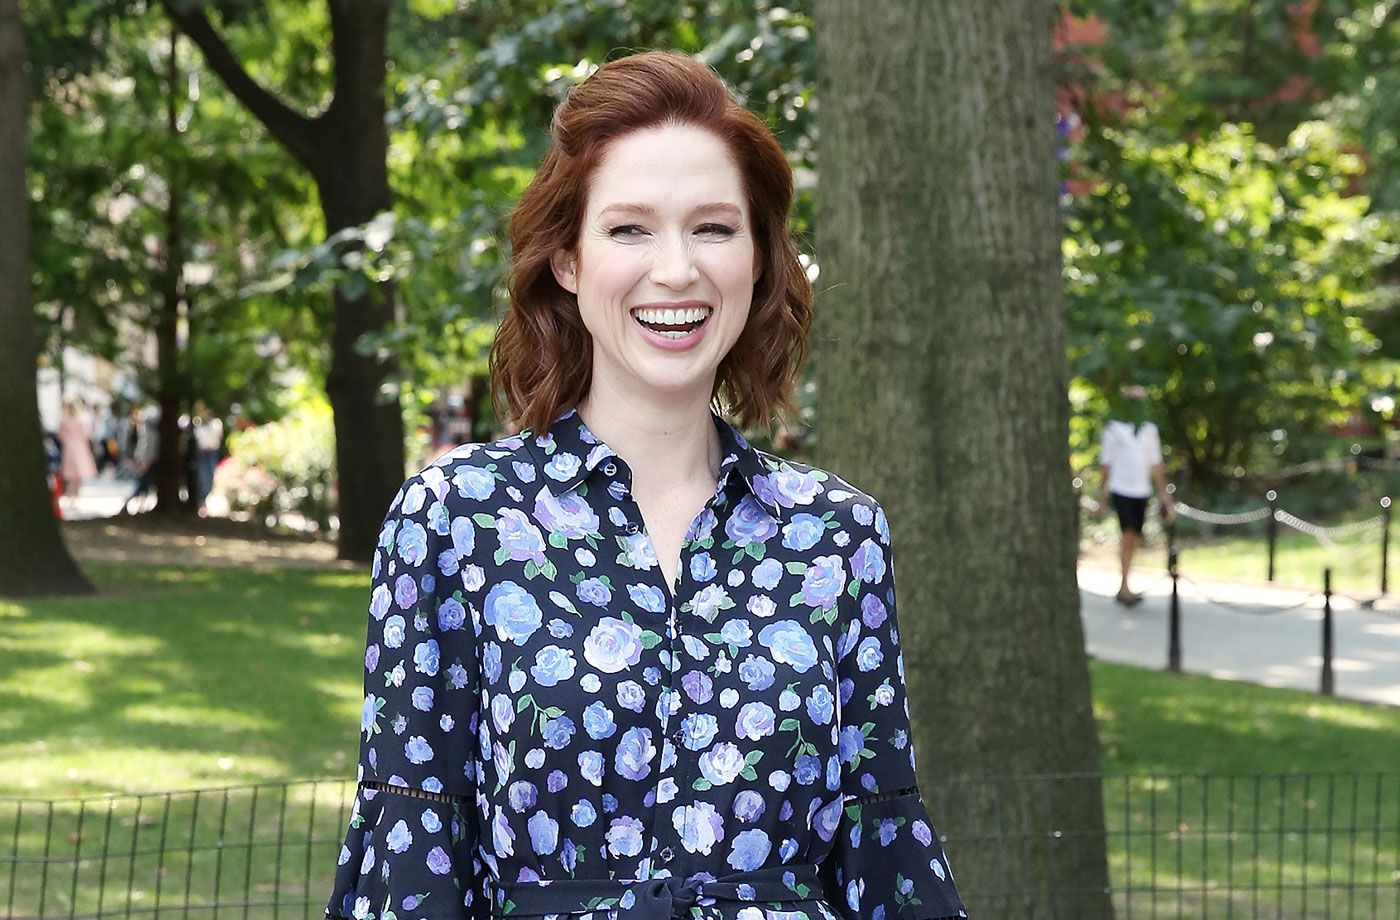 Ellie Kemper waxing poetic about finding the best SoulCycle bike is the best thing you'll read today